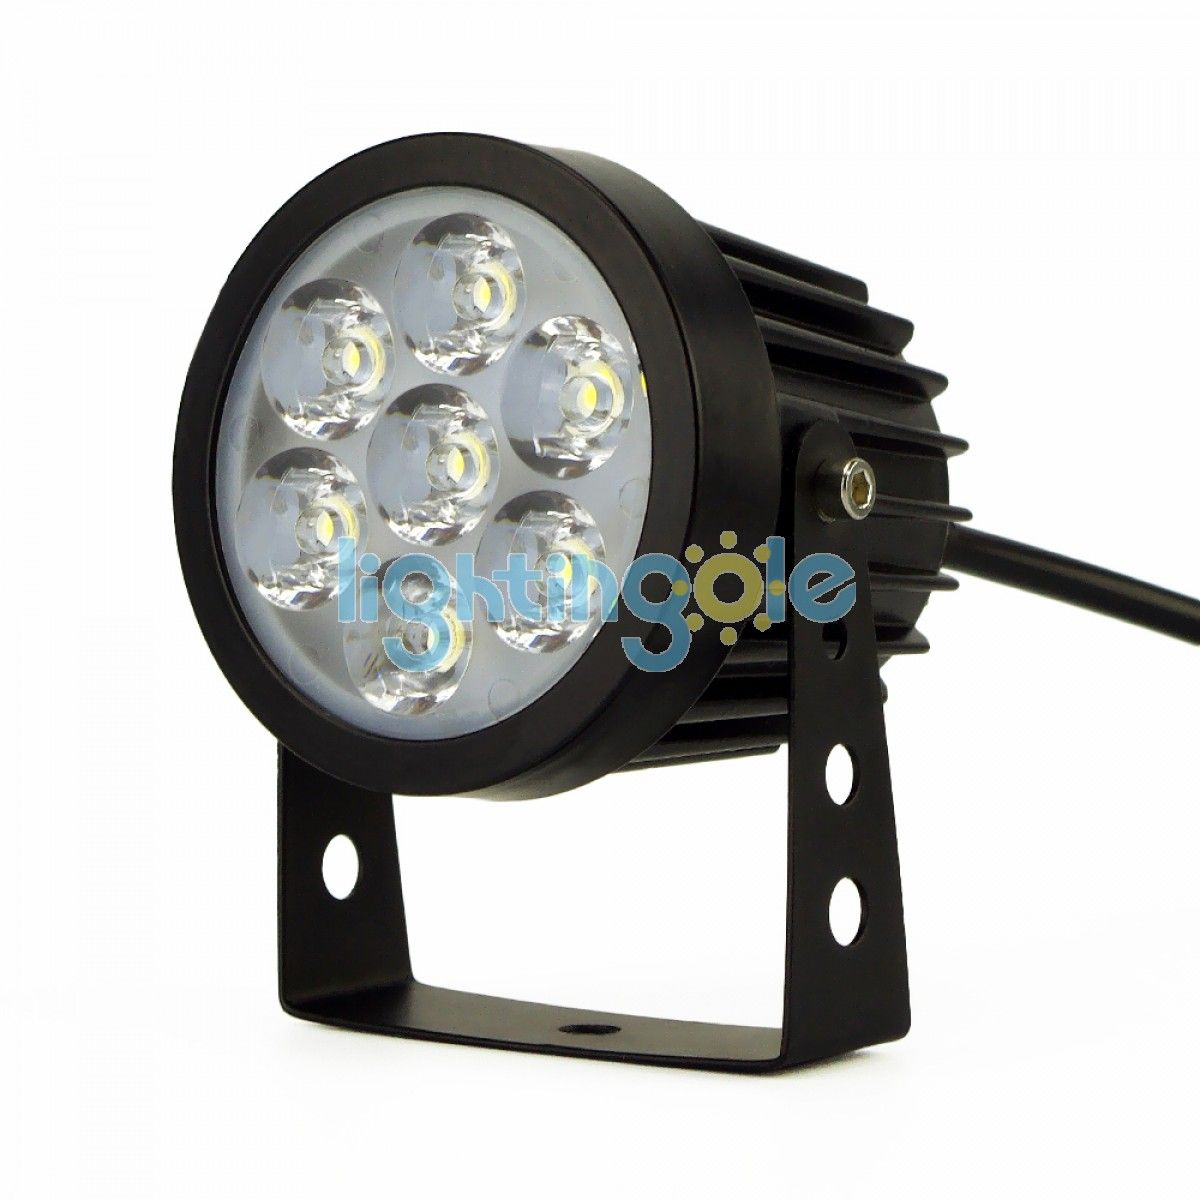 7w 12v Silver 7led Underwater Flood Light Ip68 Waterproof Landscape Fountain Lamp Warm White Led Lights Lampu Sorot Lampu